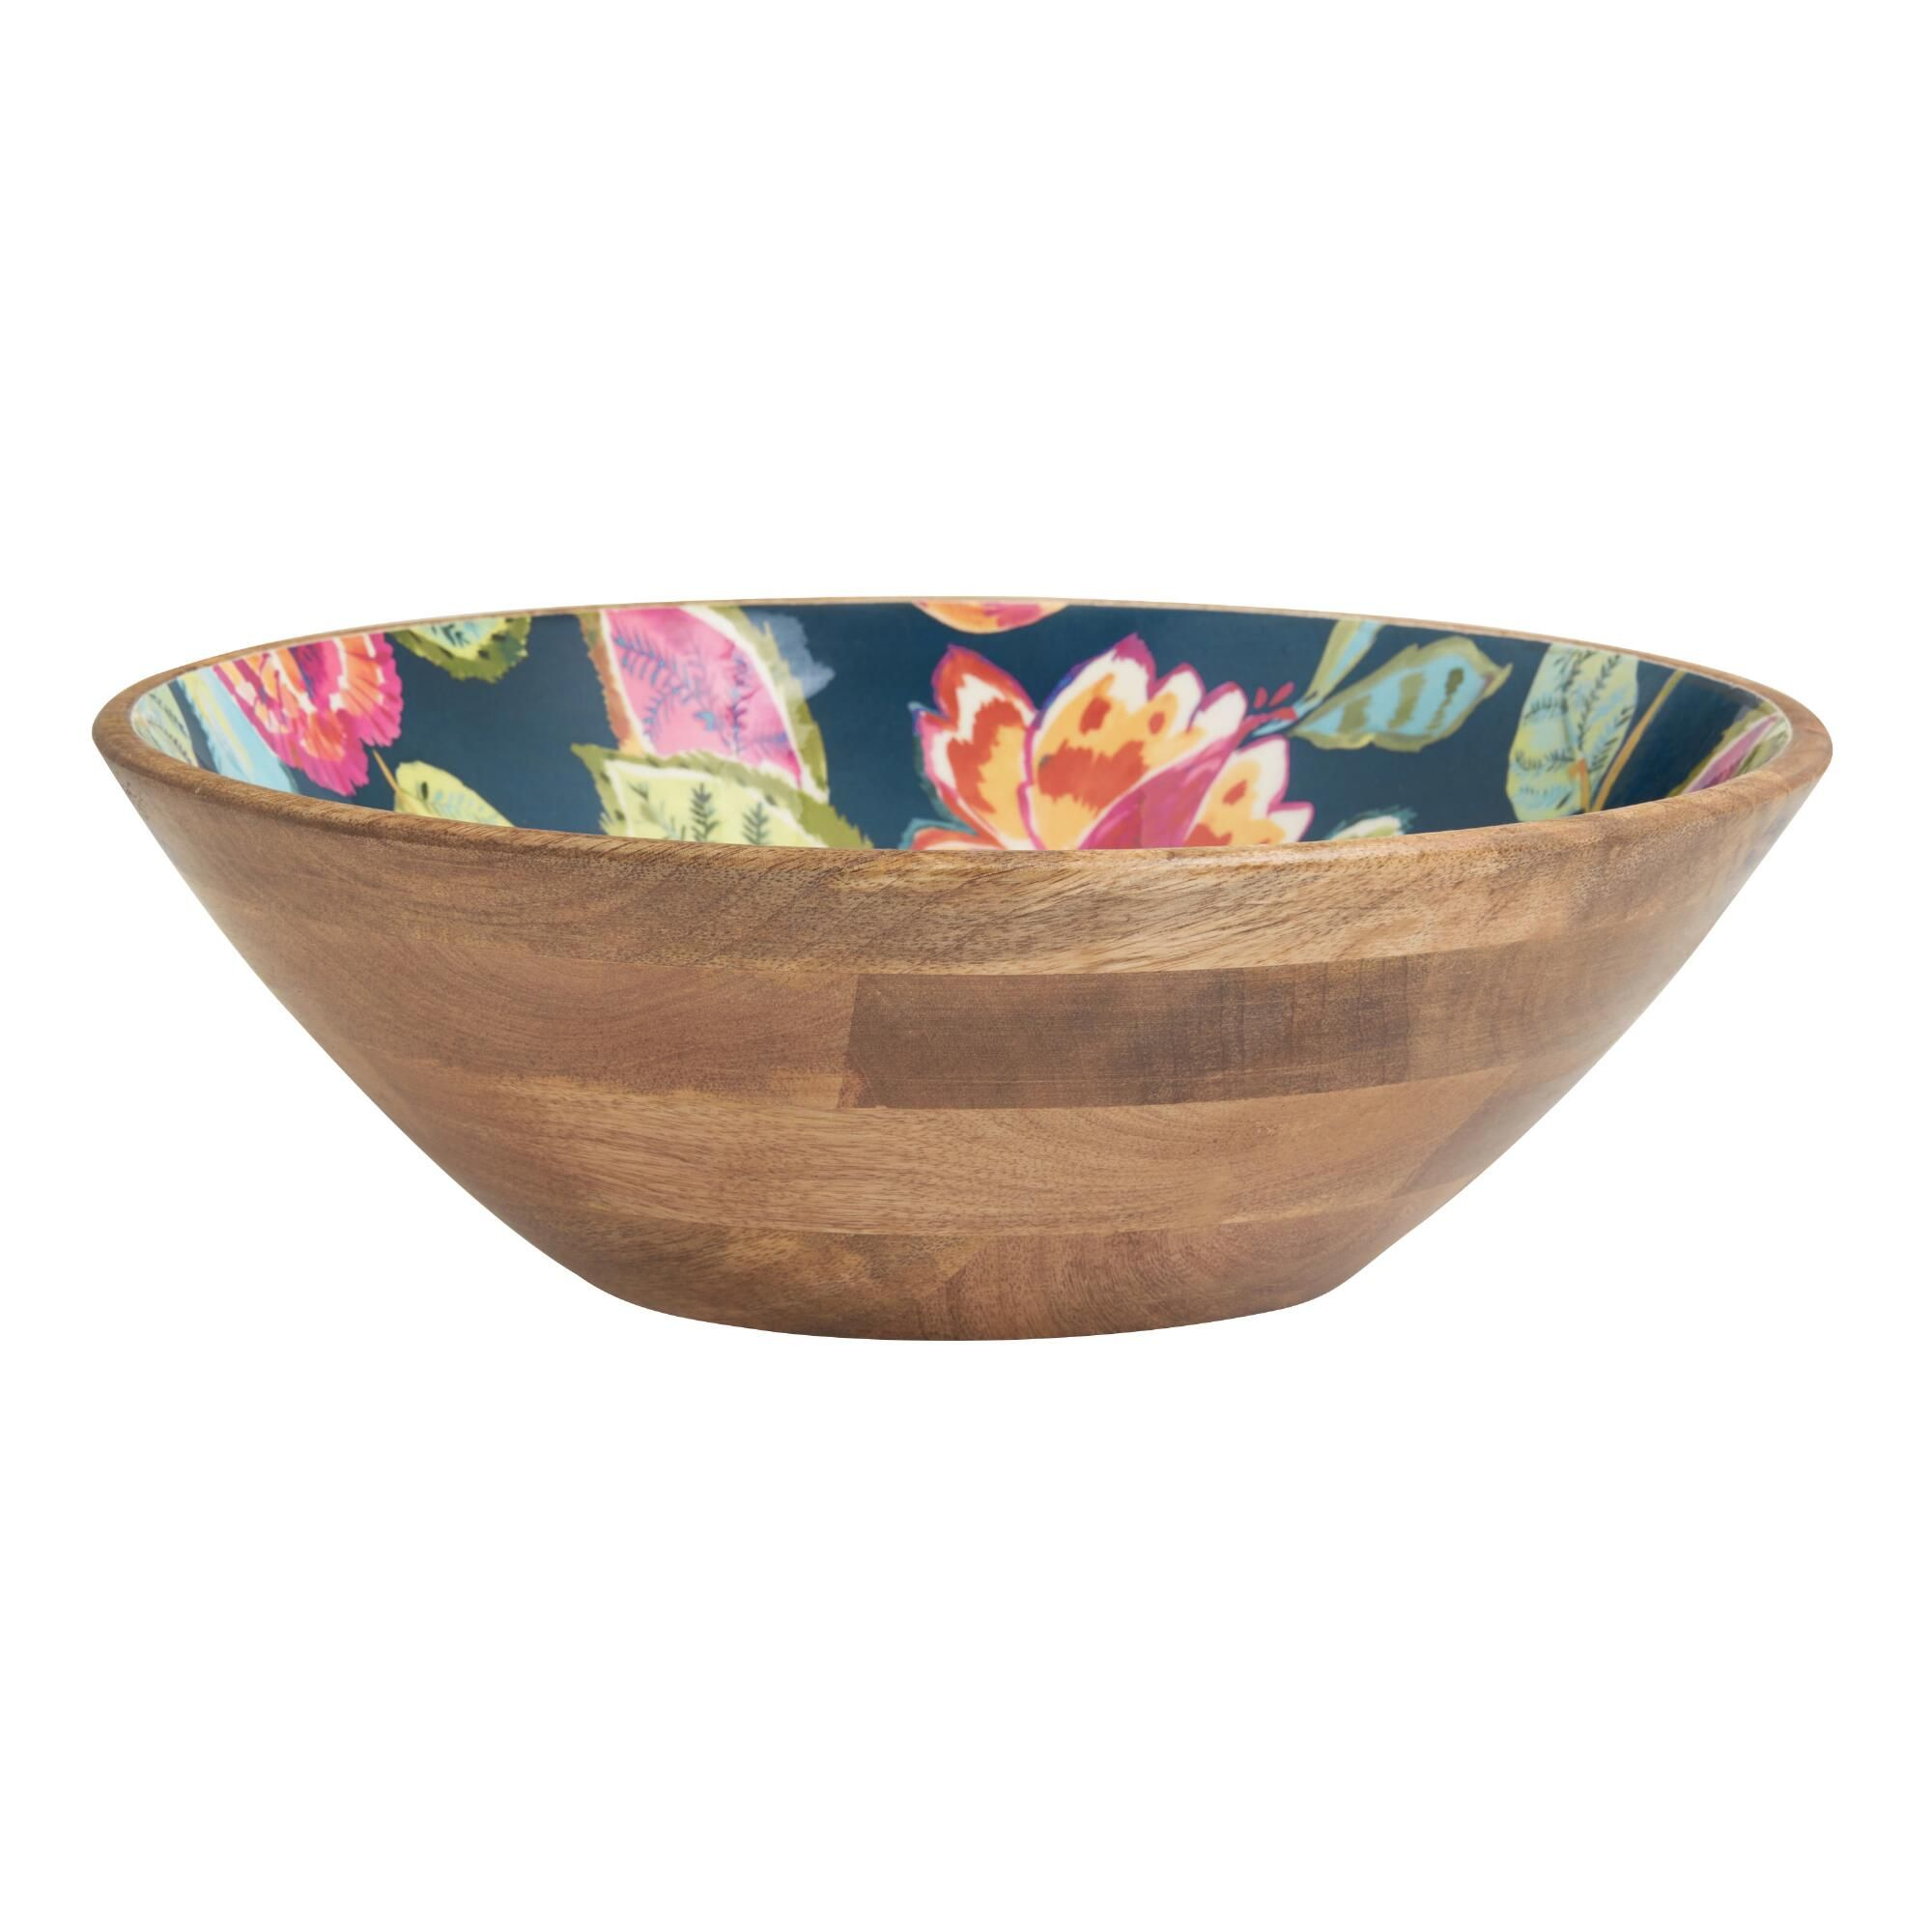 Pin By Stephanie Maestas On Wood And Resin Wood Bowls Bowl Designs Bowl